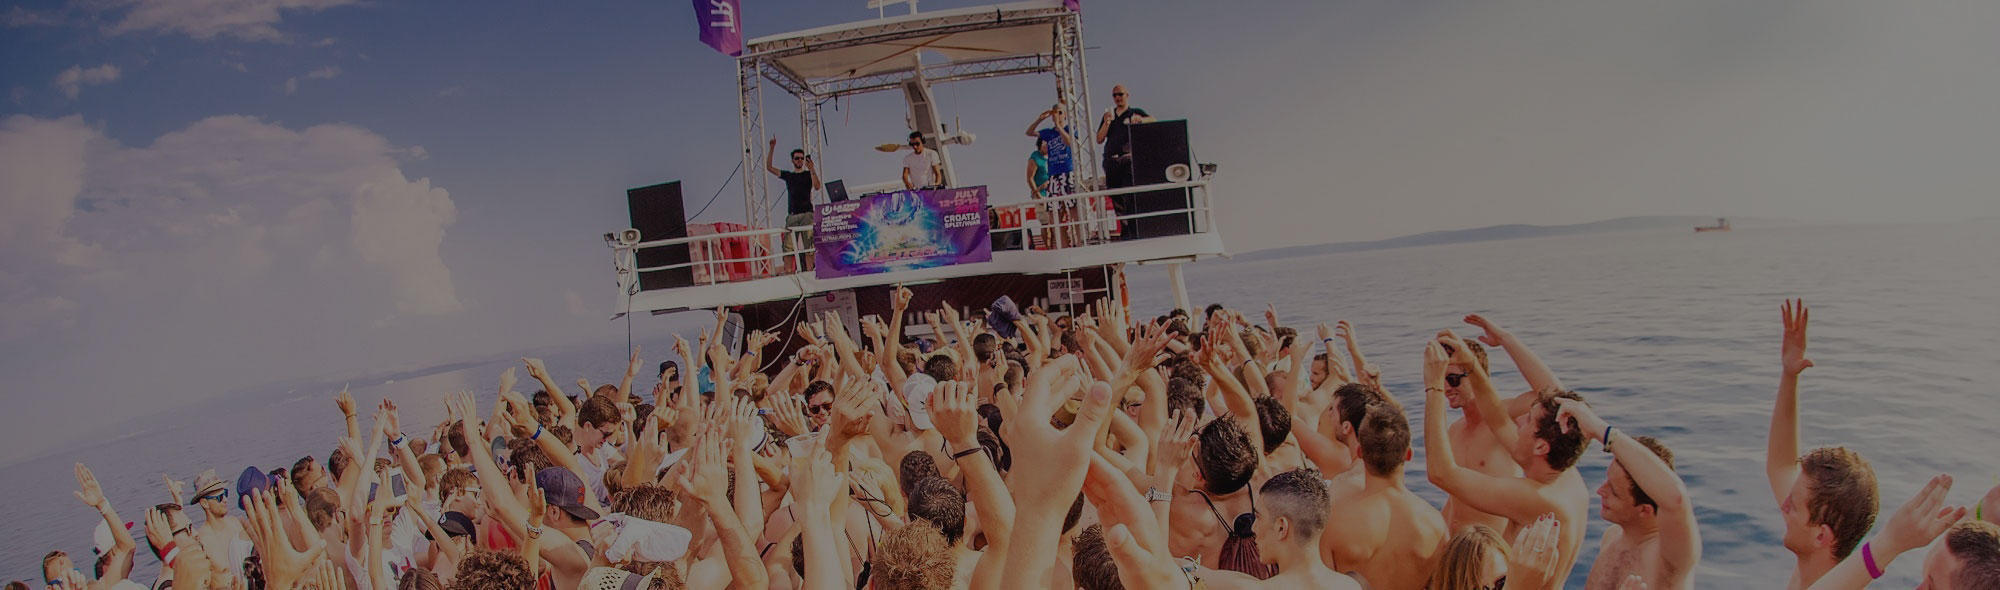 Image of Boat Party